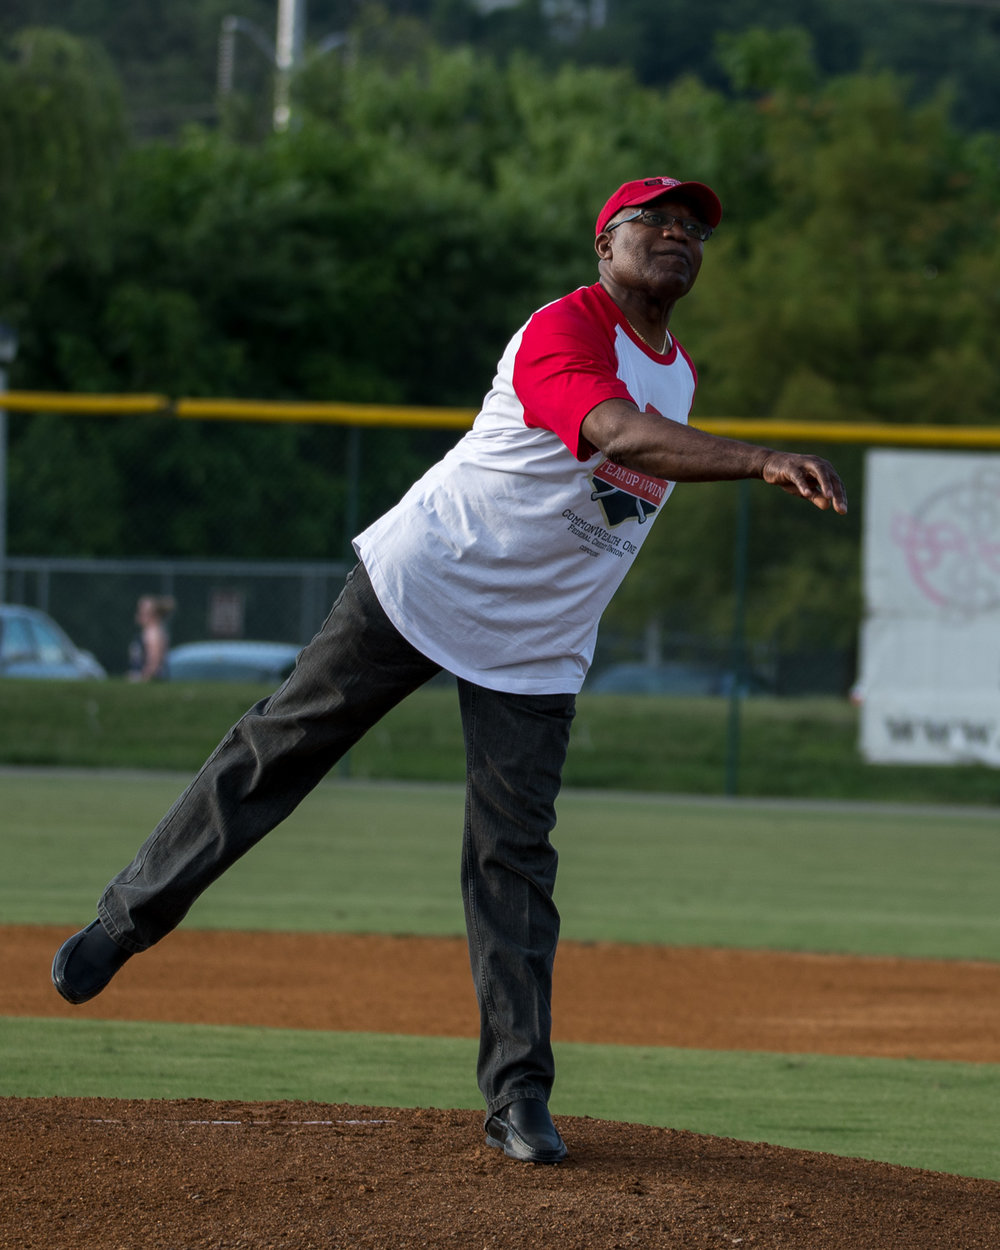 20160707 - DC Grays vs Aces-2241.jpg